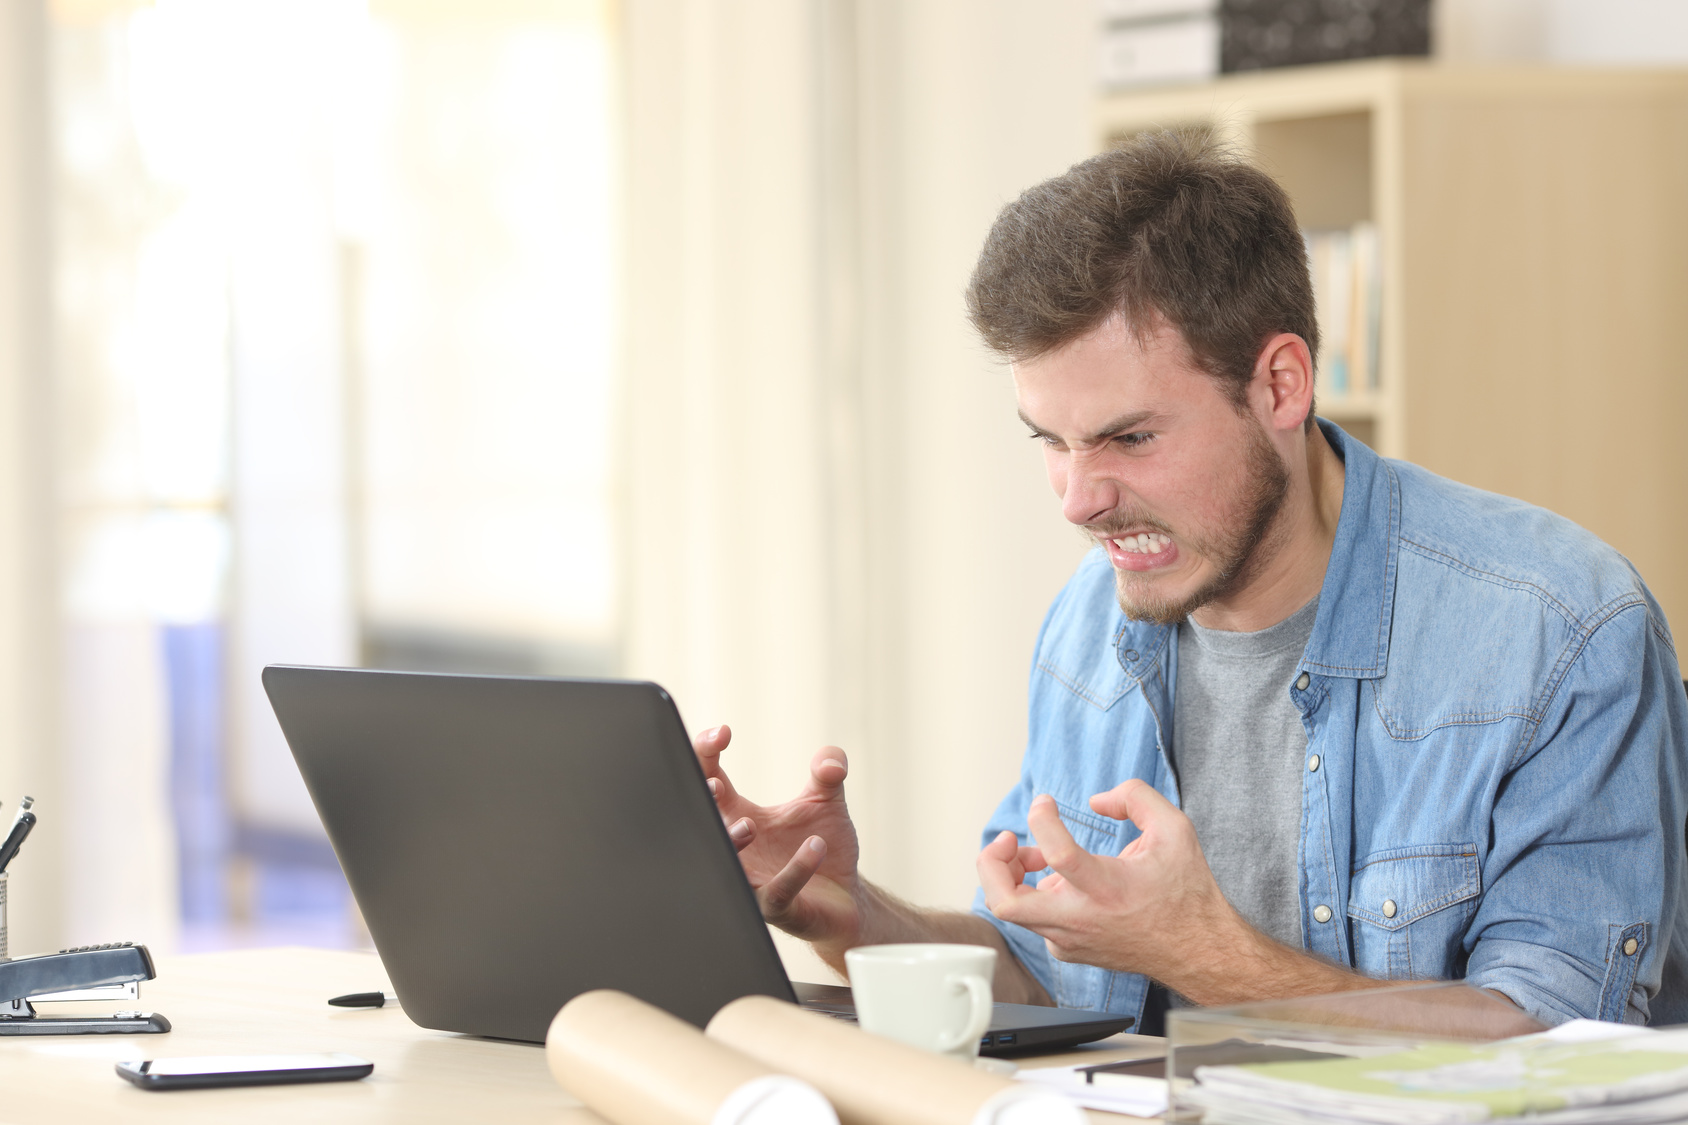 Stock photo of man angry at computer